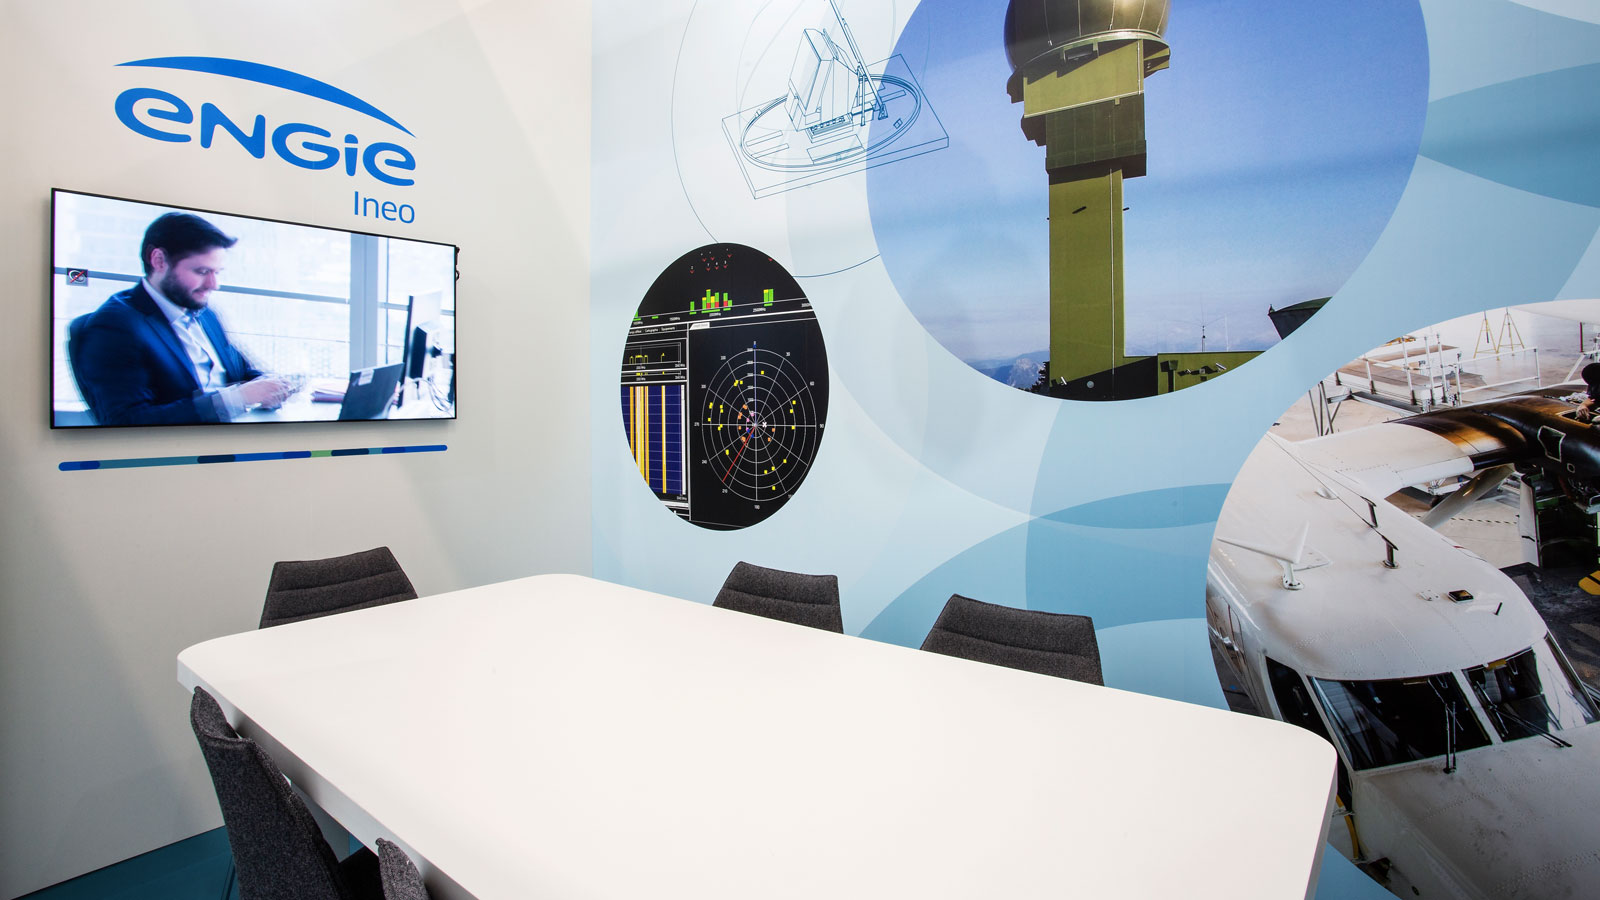 Stand-Design-Engie-Ineo-SIAE-Meeting